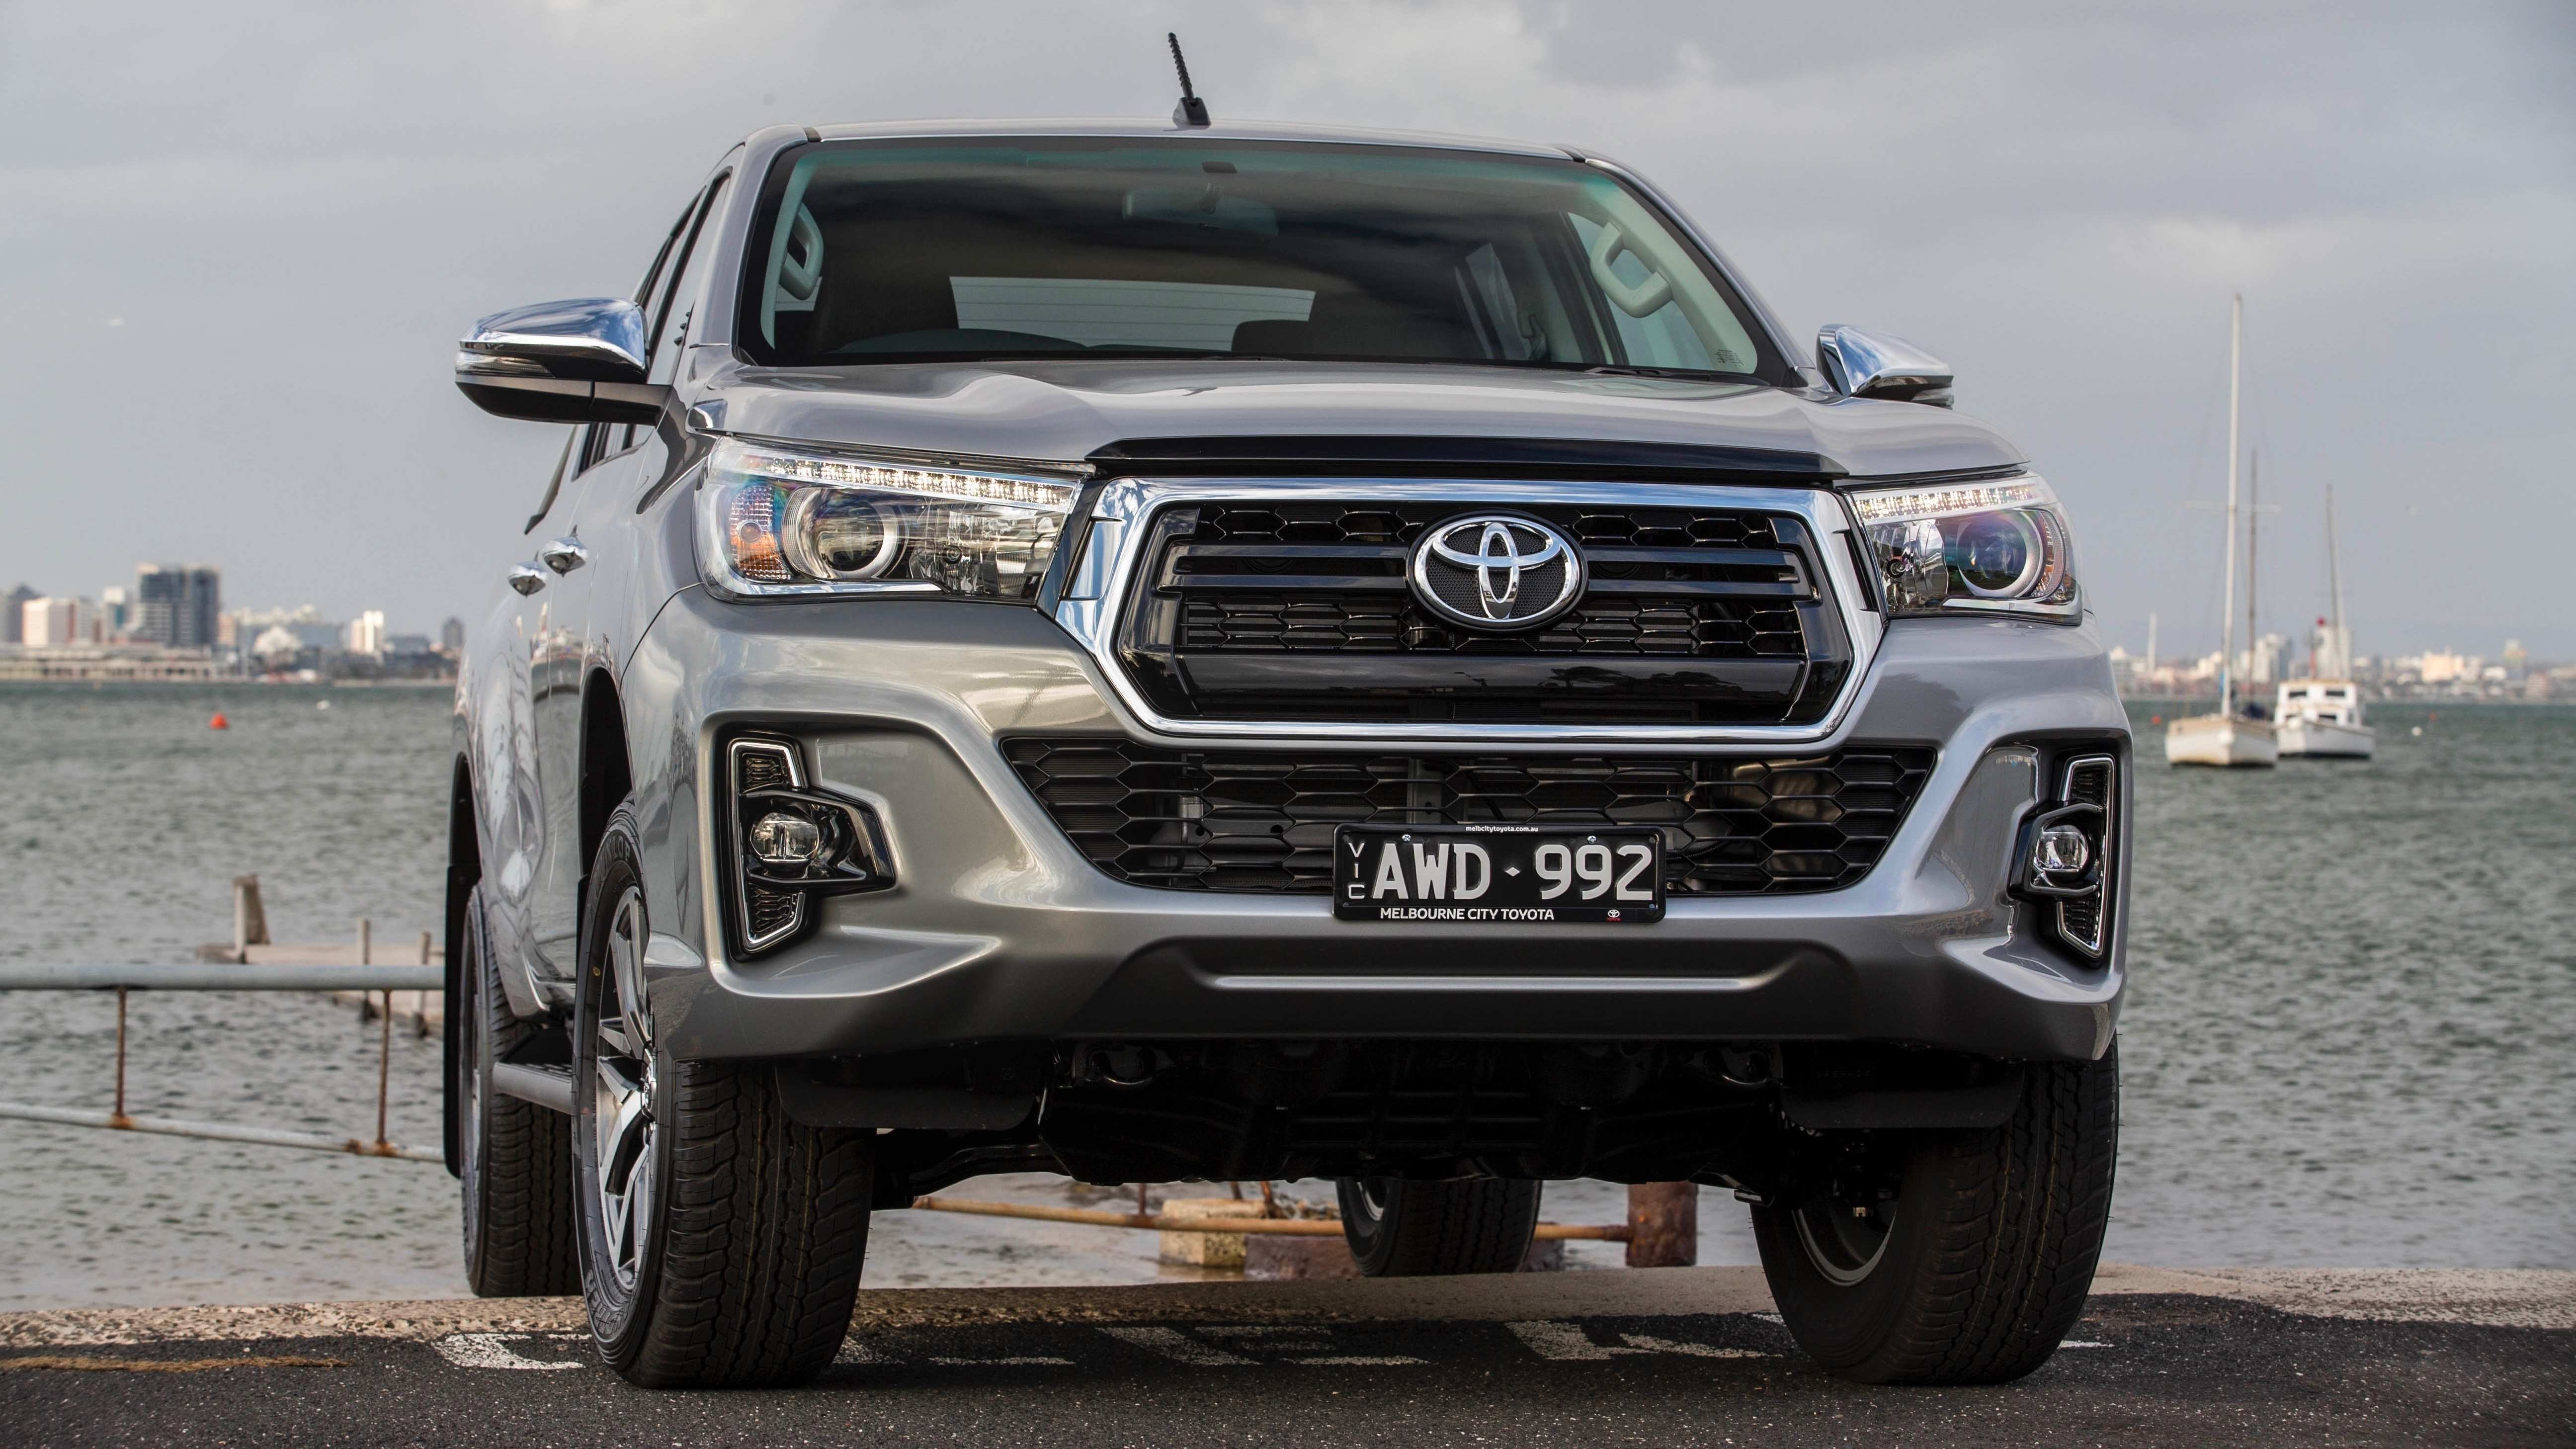 52 New 2019 Toyota Hilux Spy Shots Picture